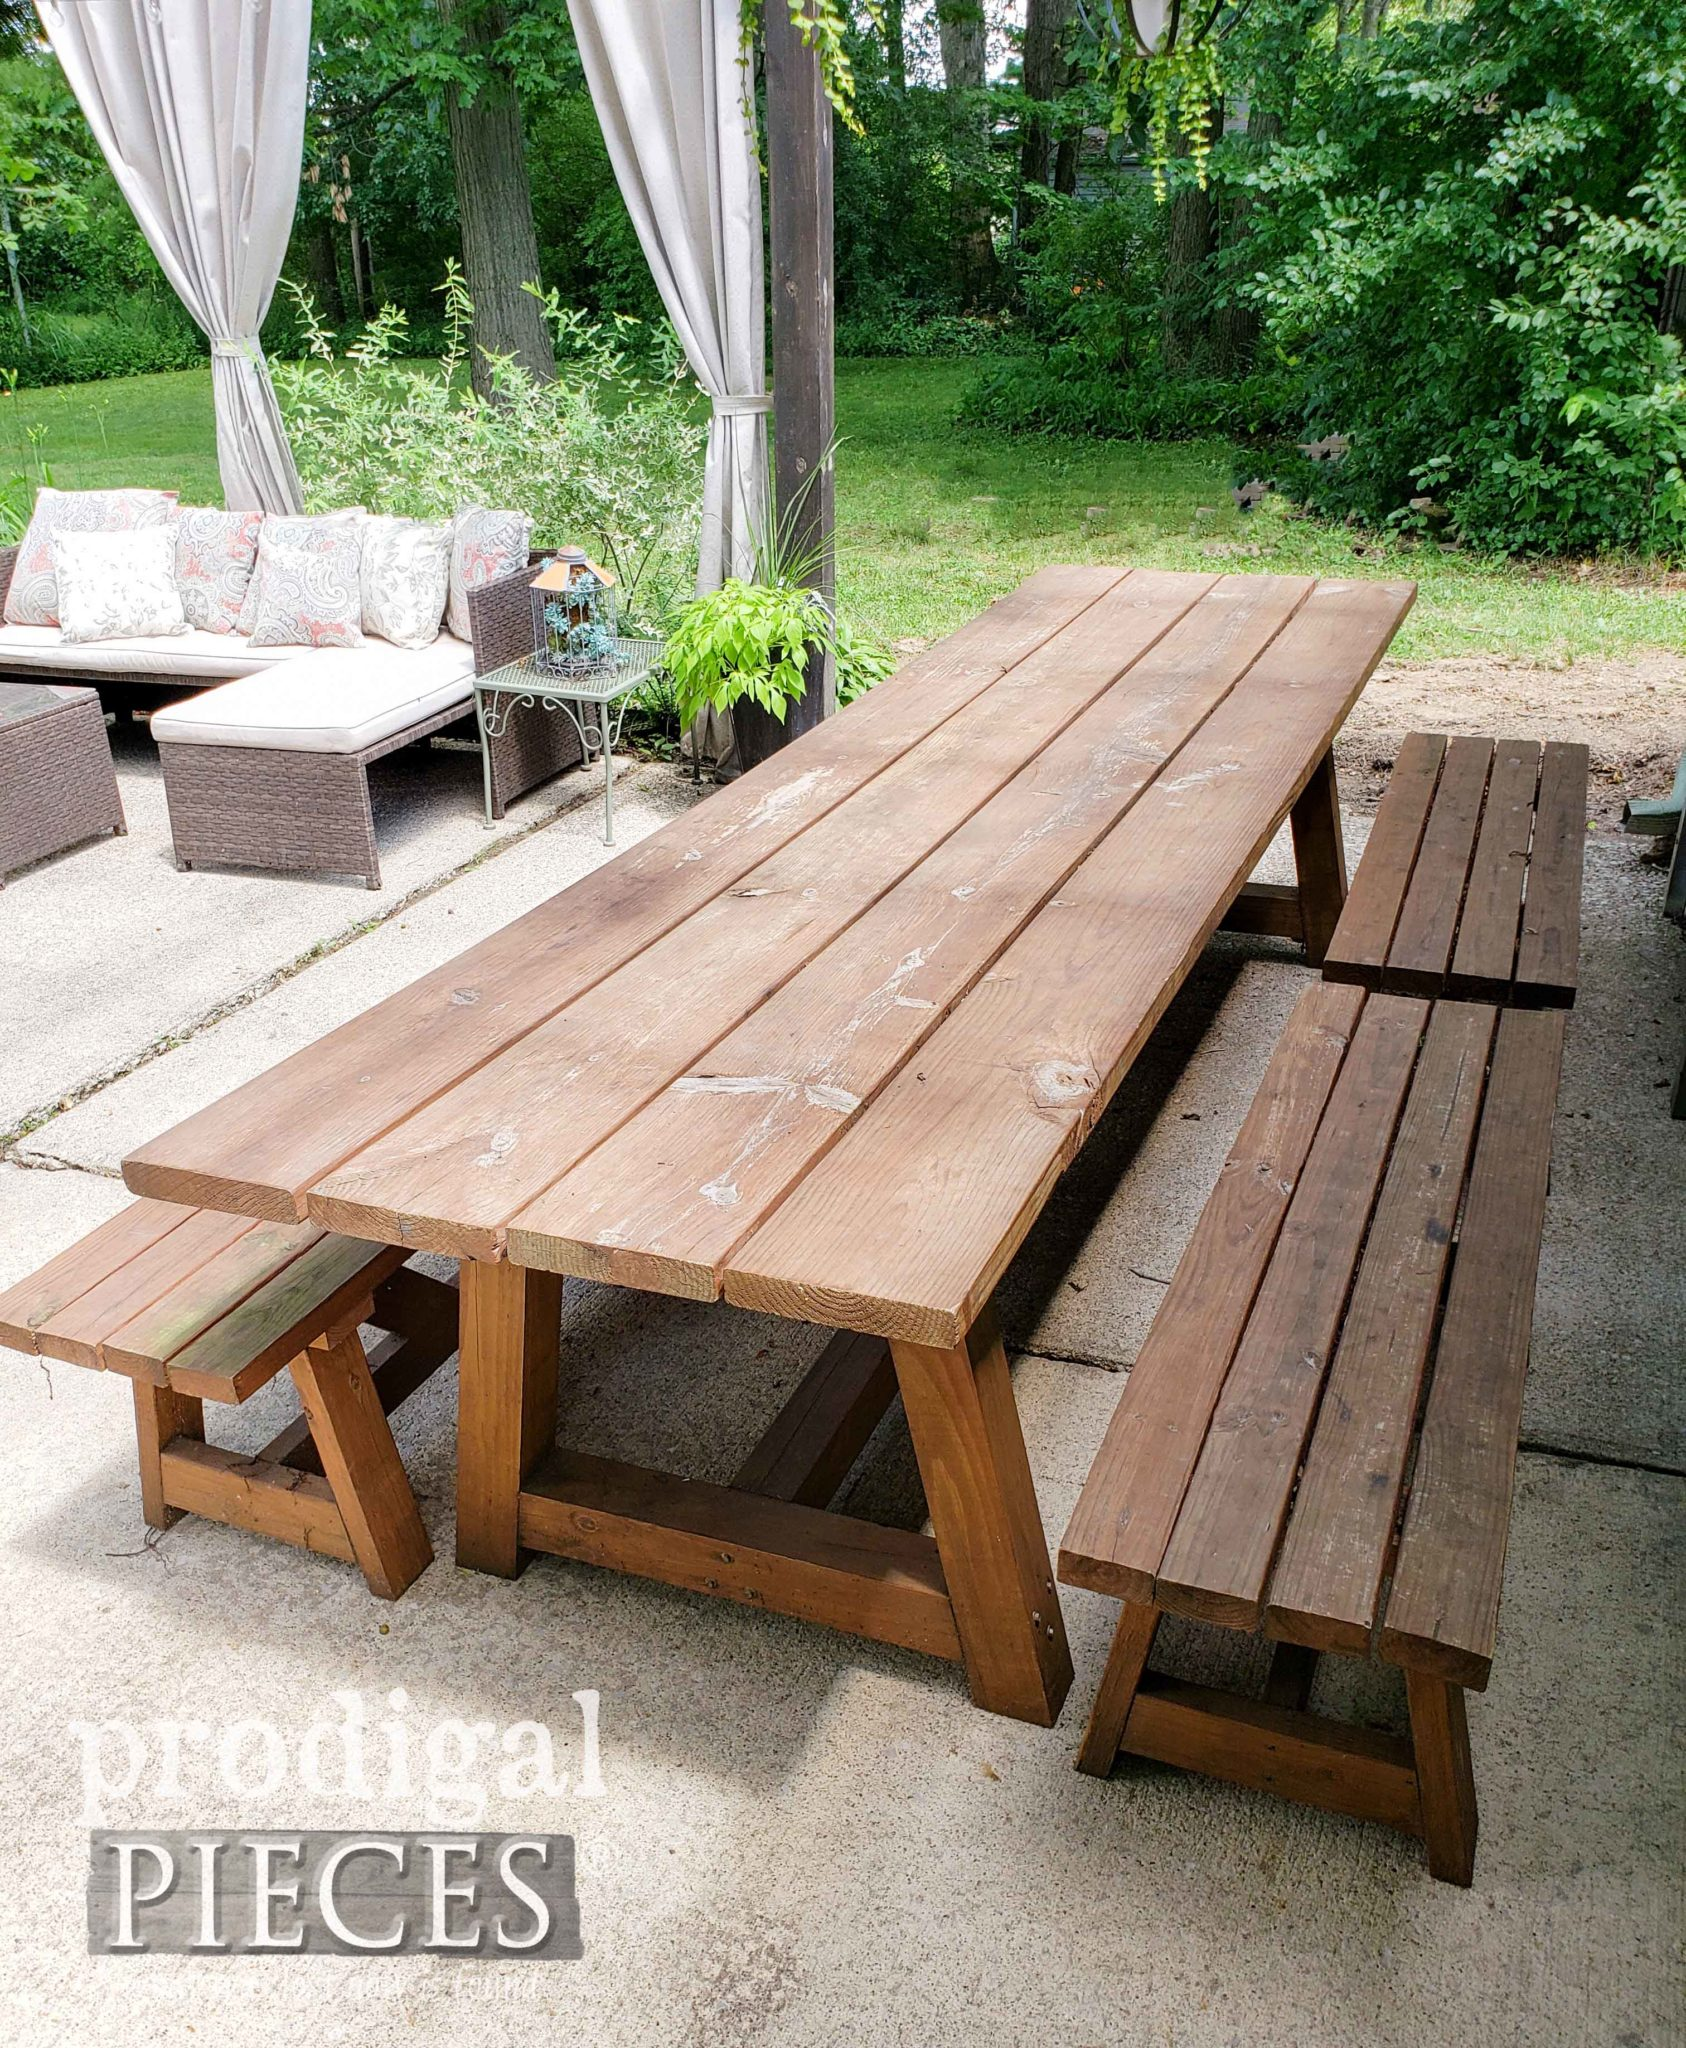 Patio Table Before Update by Prodigal Pieces | prodigalpieces.com